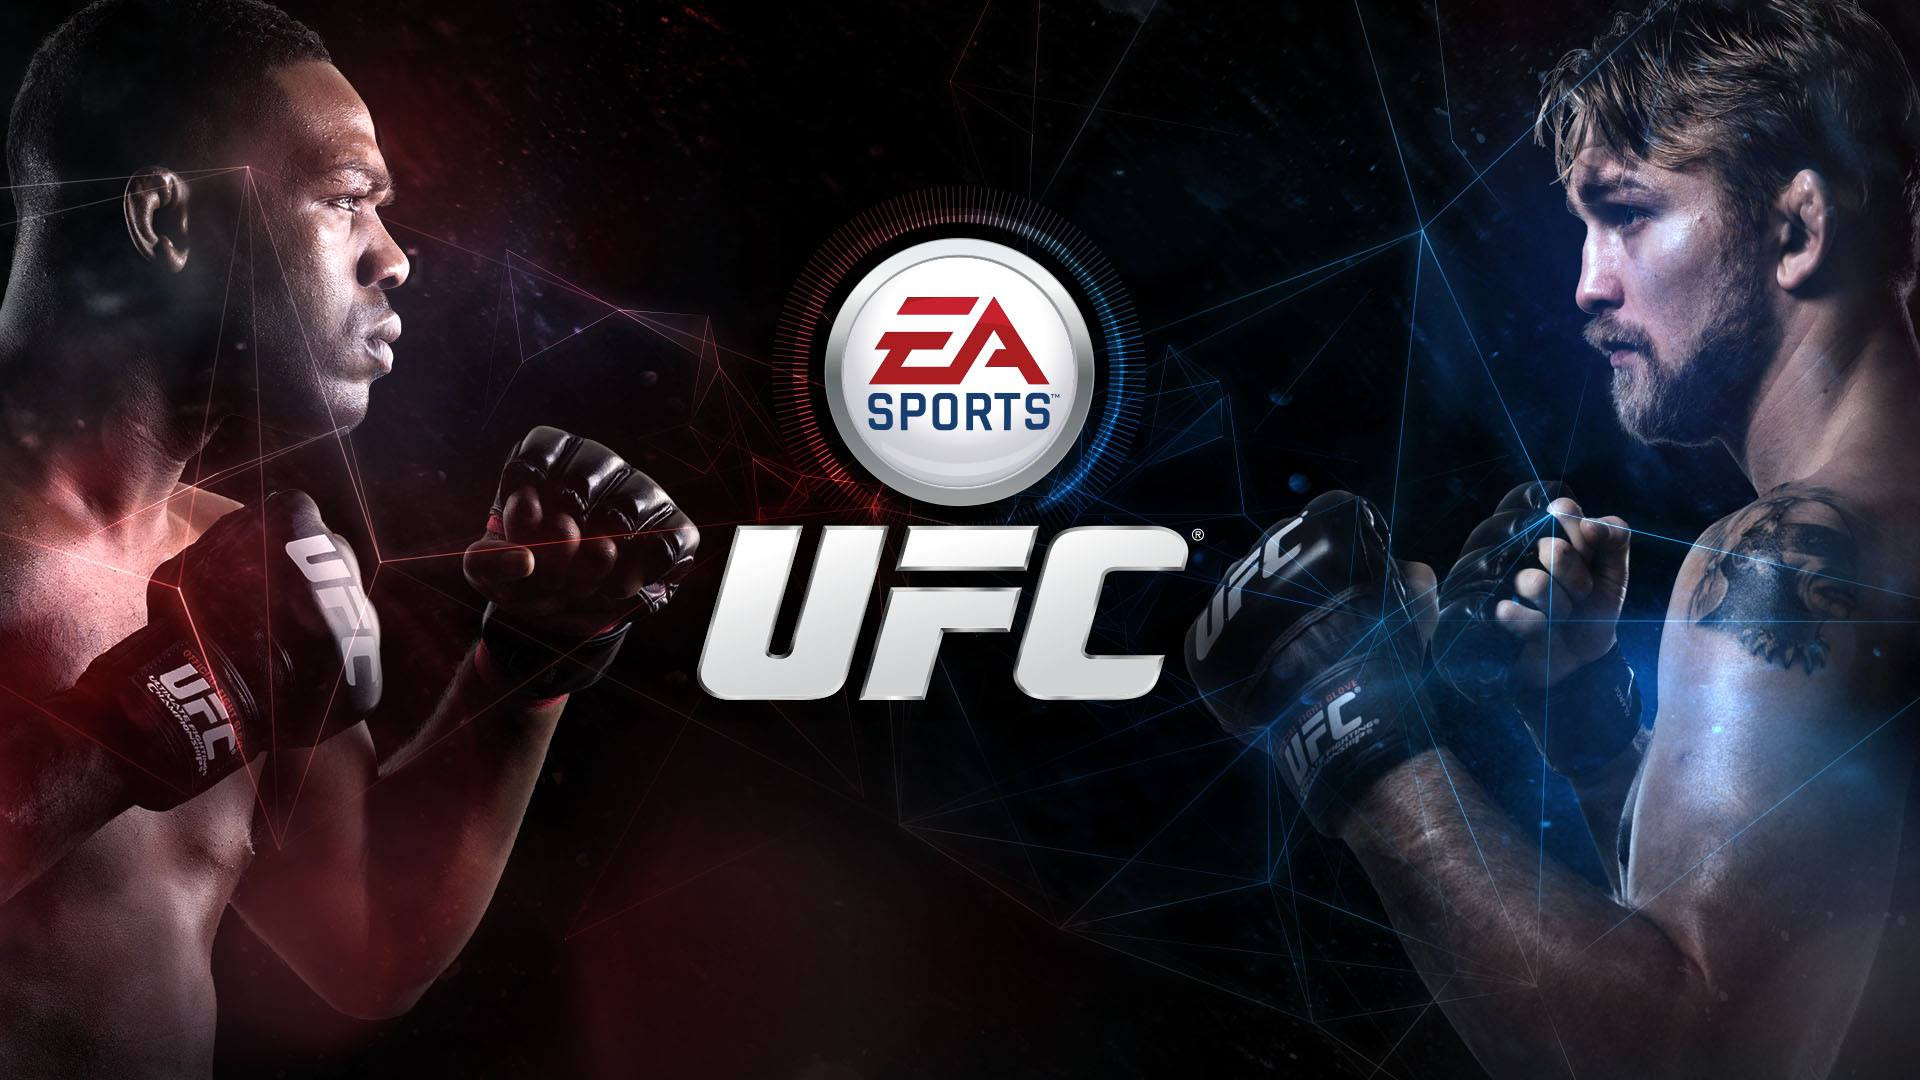 background - Informace o novém EA Sports UFC 3